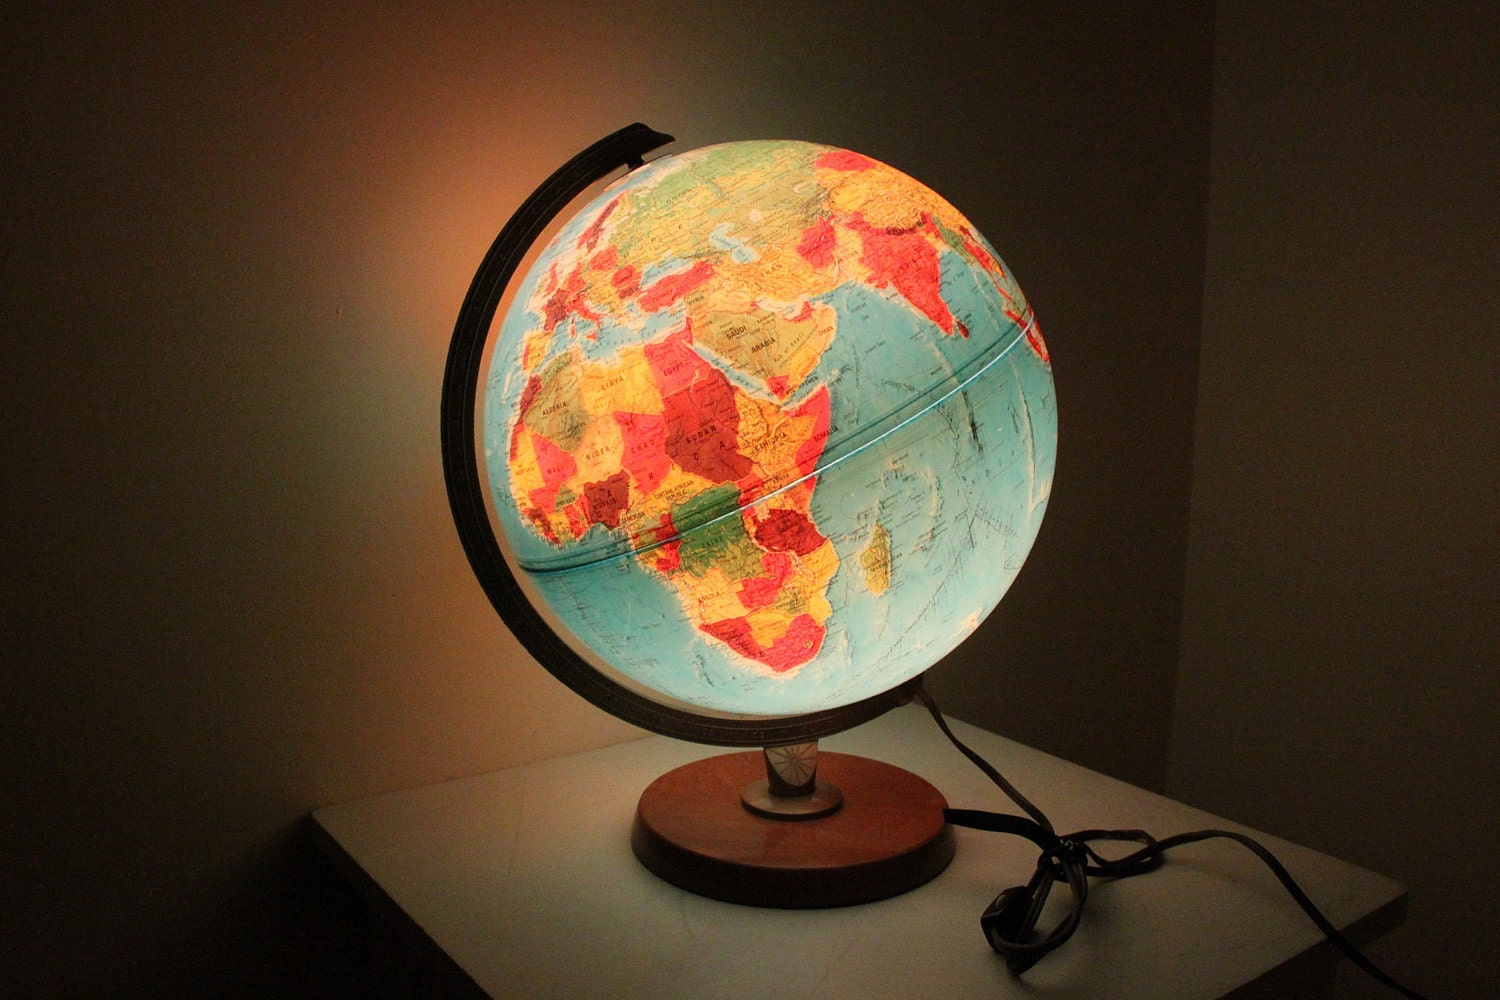 Vintage illuminate Globe Lamp By Replogle World Horizon Series